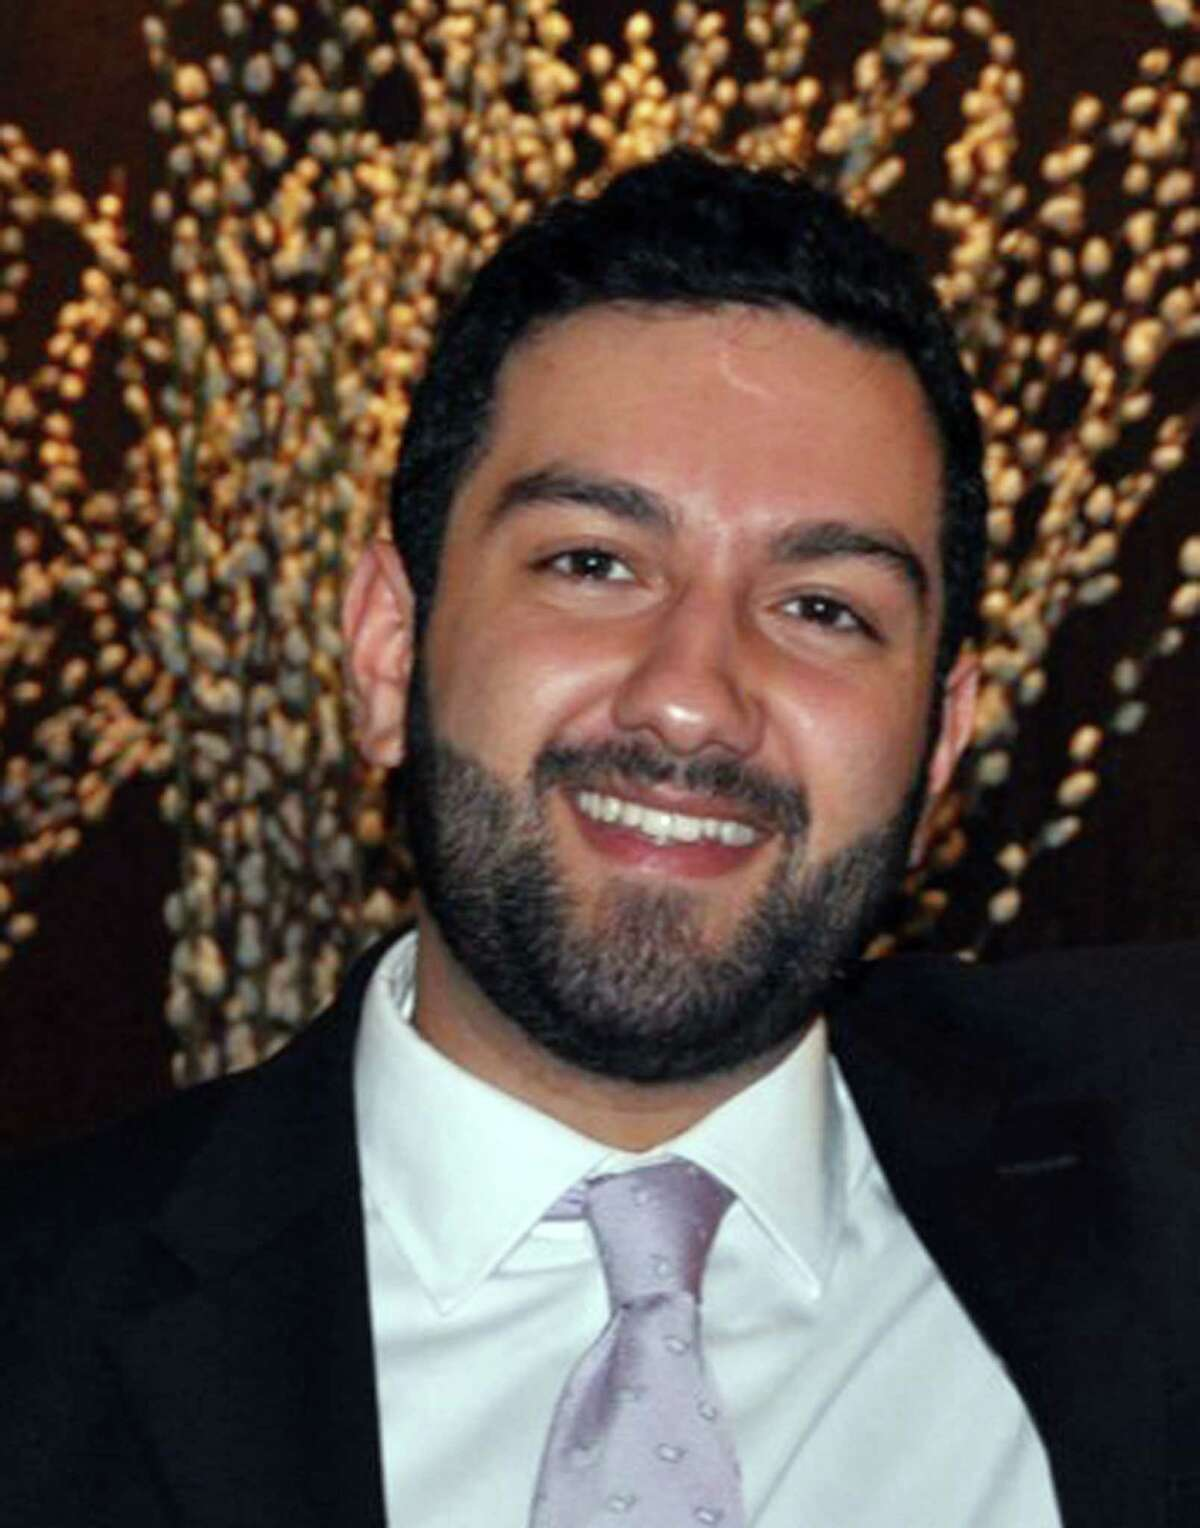 This undated family photo shows Bijan Ghaisar, 25, of McLean, Va., who died after a Nov. 17, 2017, chase in which he was shot by U.S. Park Police. (Family photo via AP)